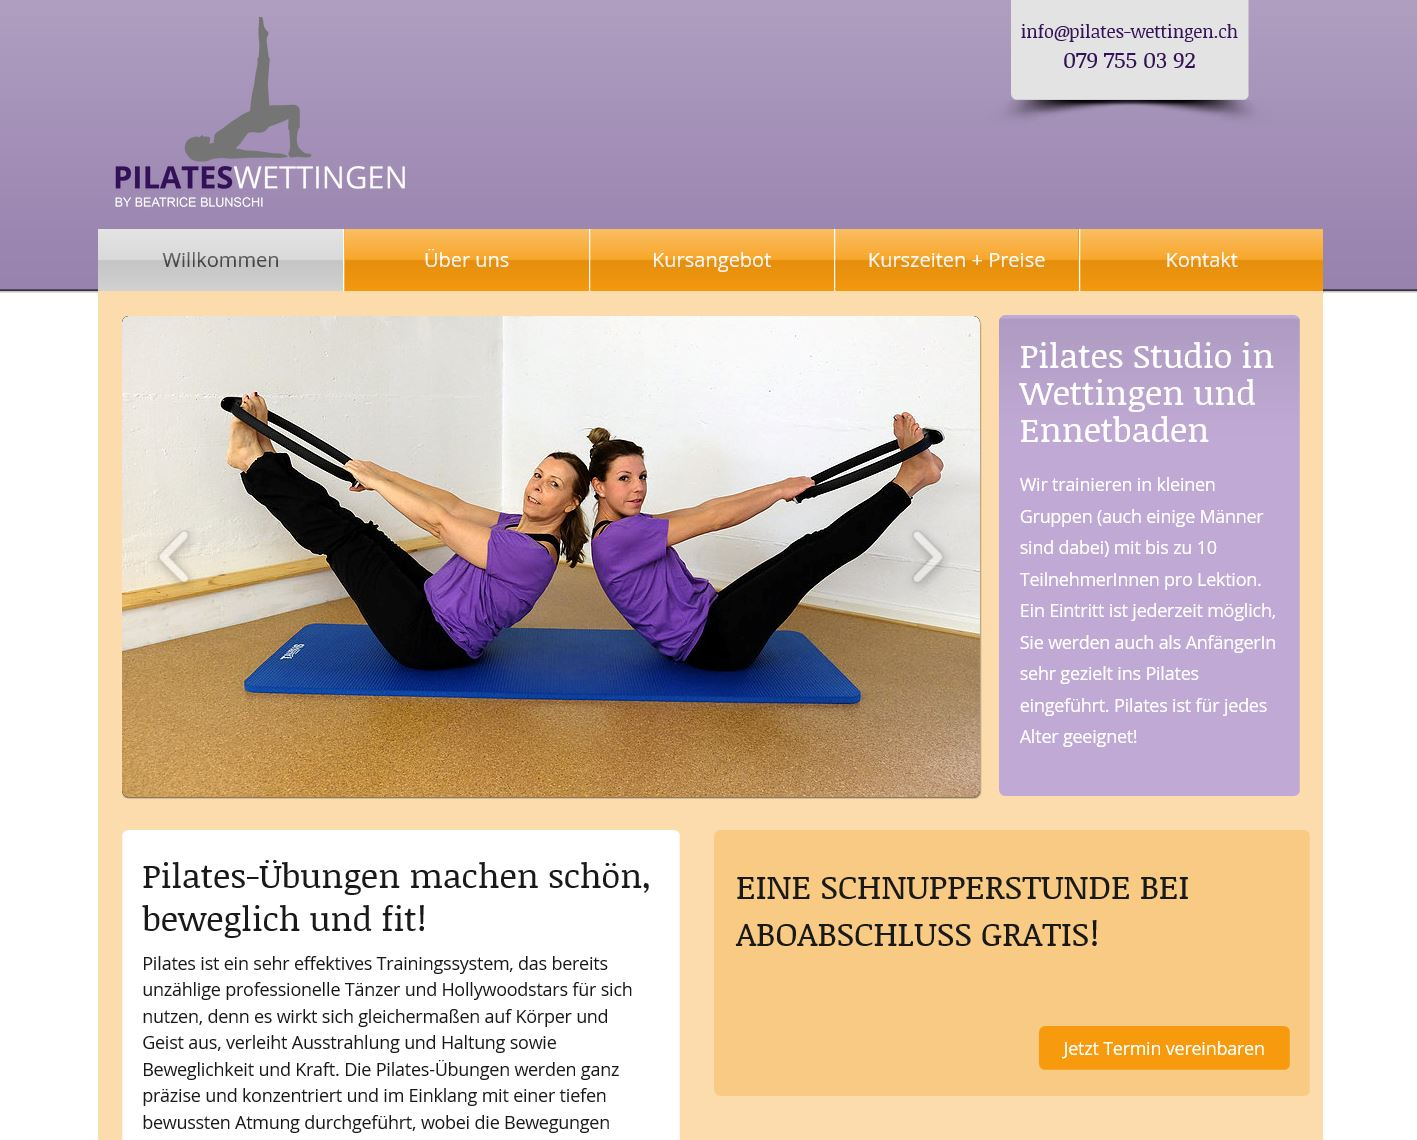 Pilates-Wettingen